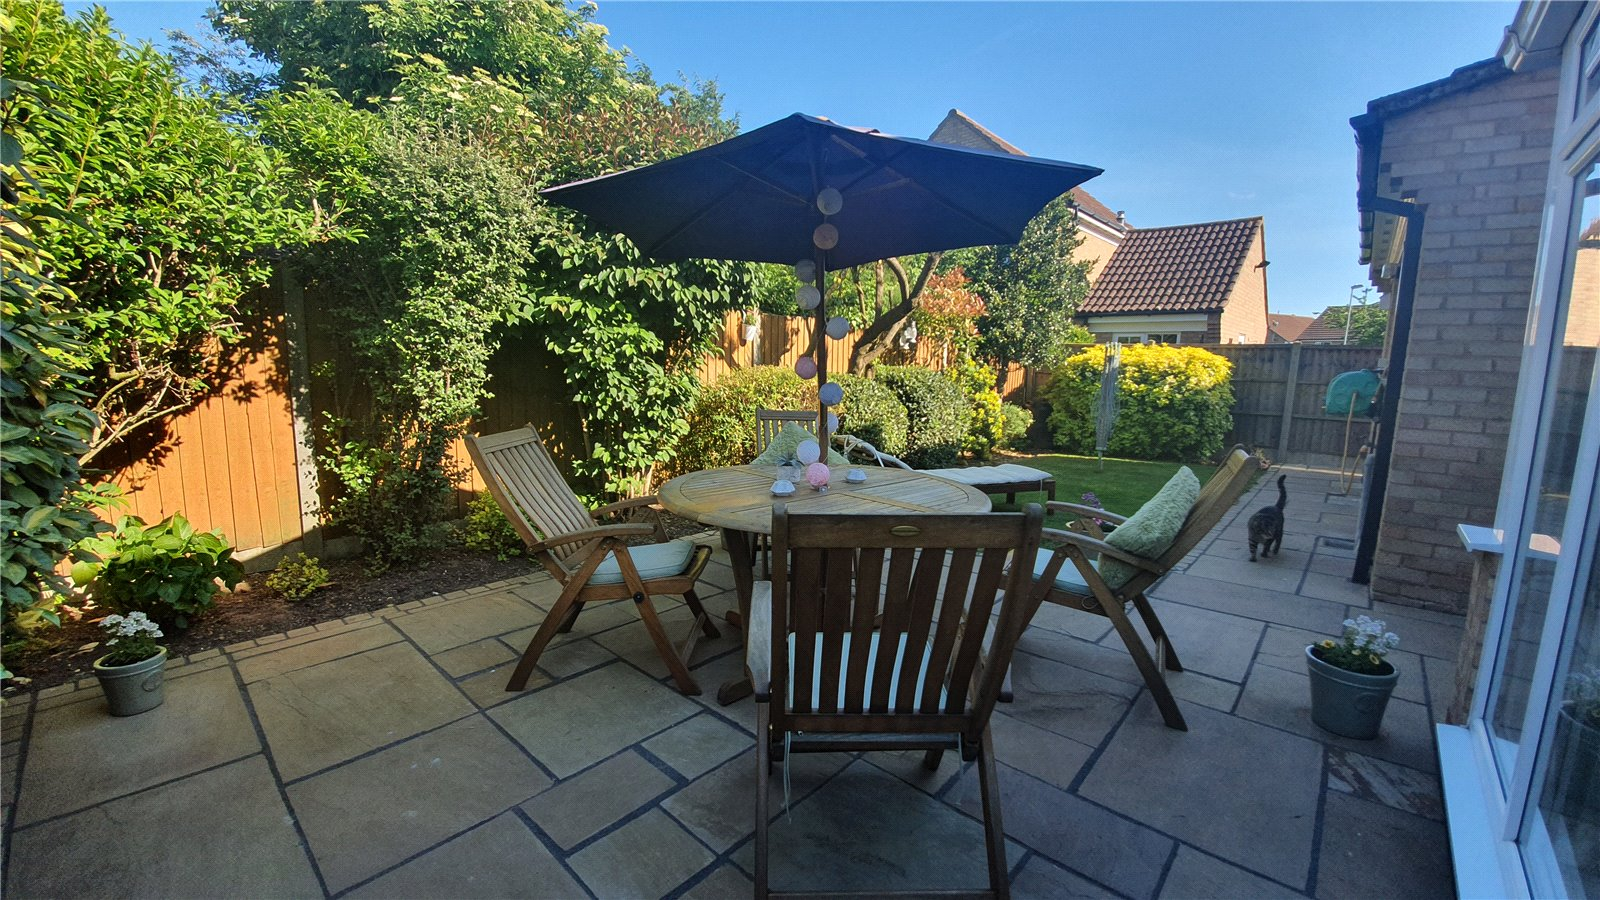 3 bed house for sale in Axis Way, Eaton Socon  - Property Image 4